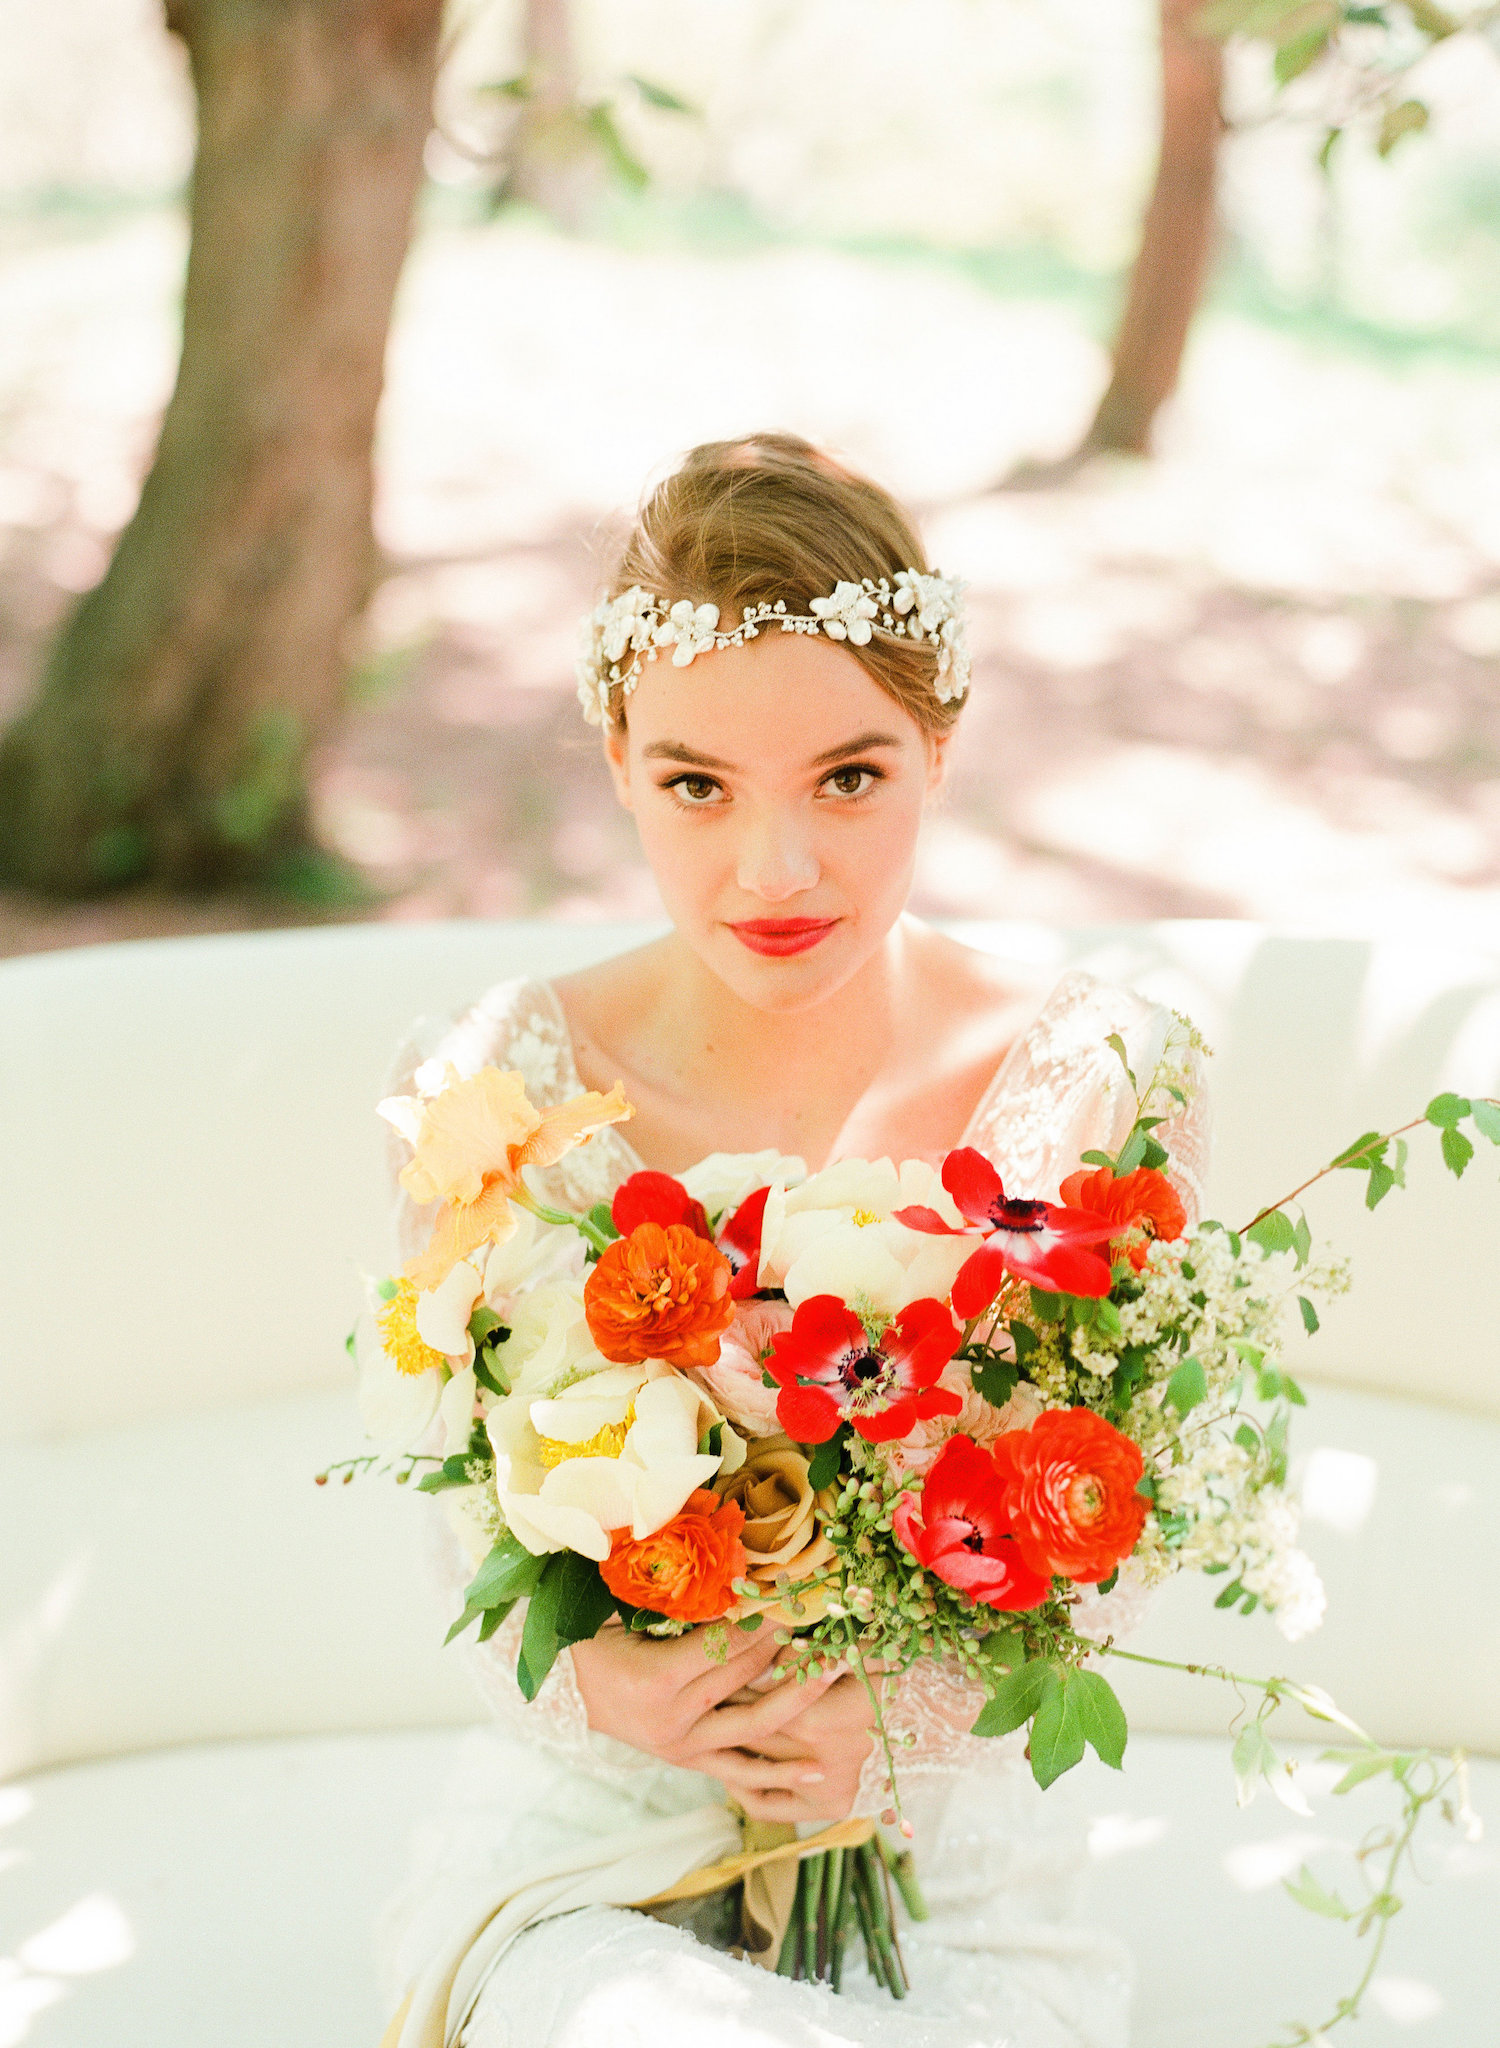 Morning Glow - Full Aperture Floral & Lindsay Madden Photography 33.jpeg